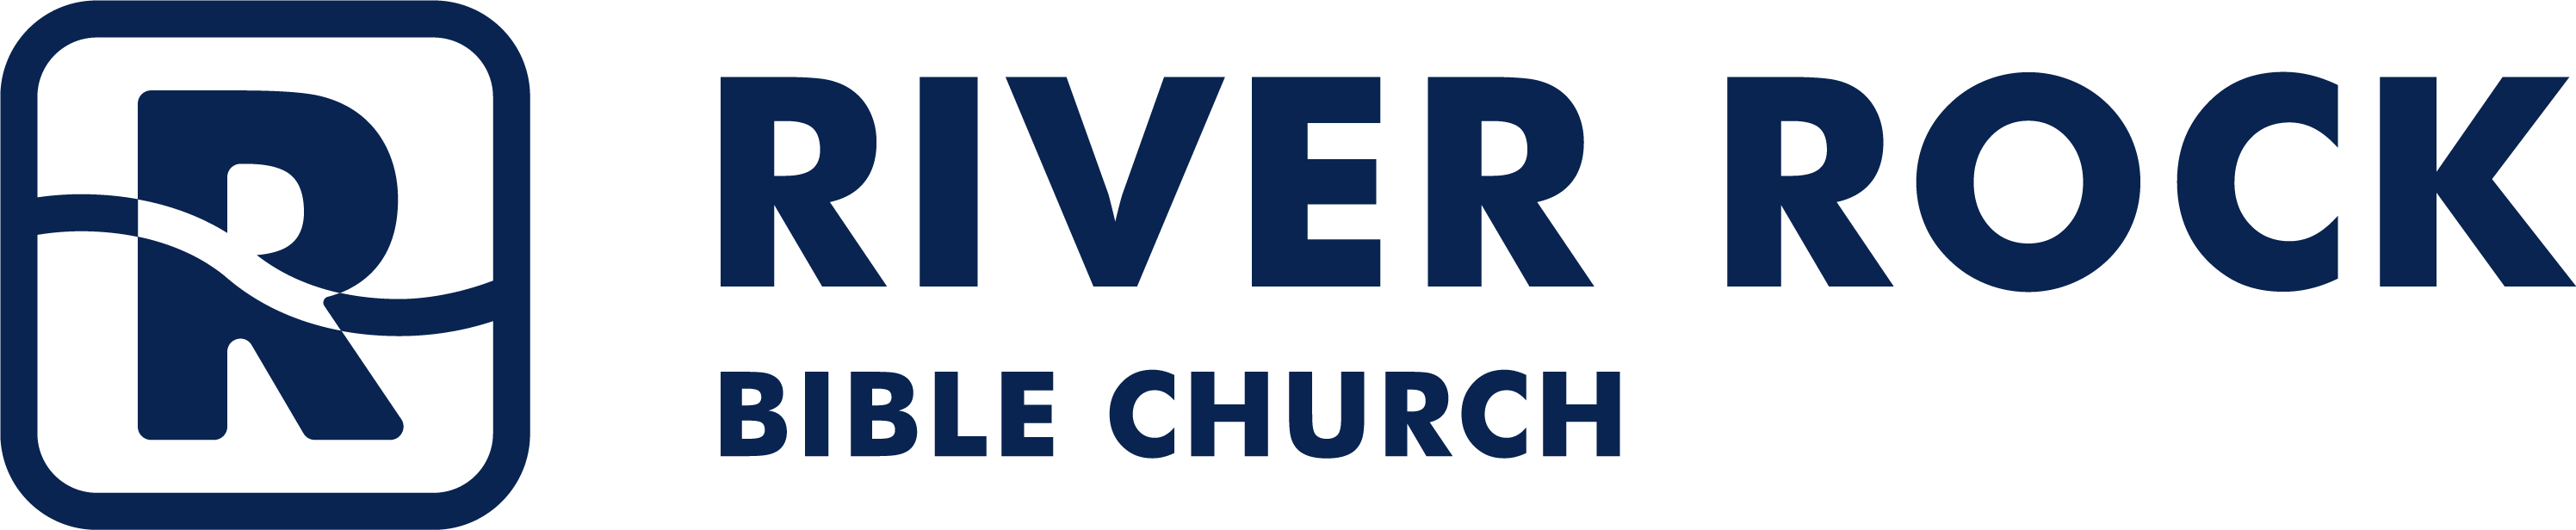 River Rock Bible Church in Georgetown Tx | Connect, Grow